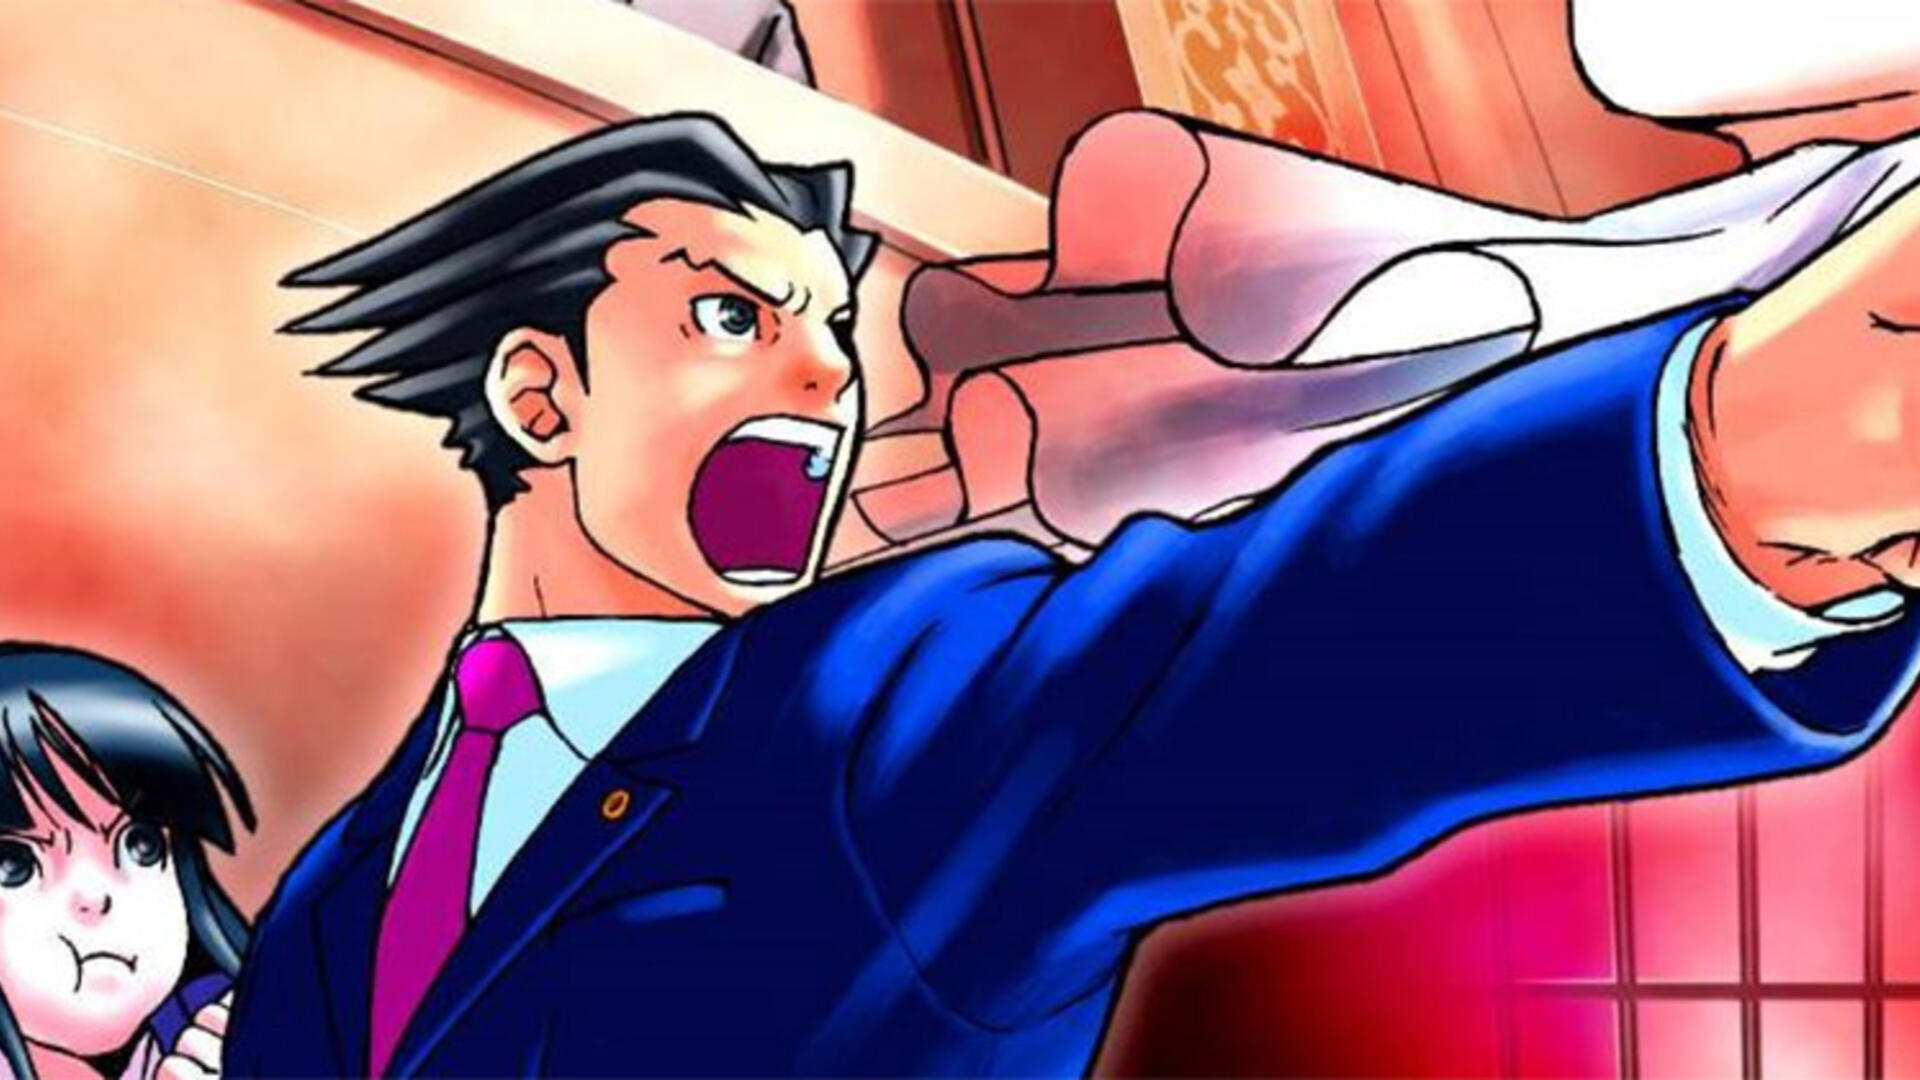 Phoenix Wright: Ace Attorney Trilogy 3DS Review: Trials of the Century